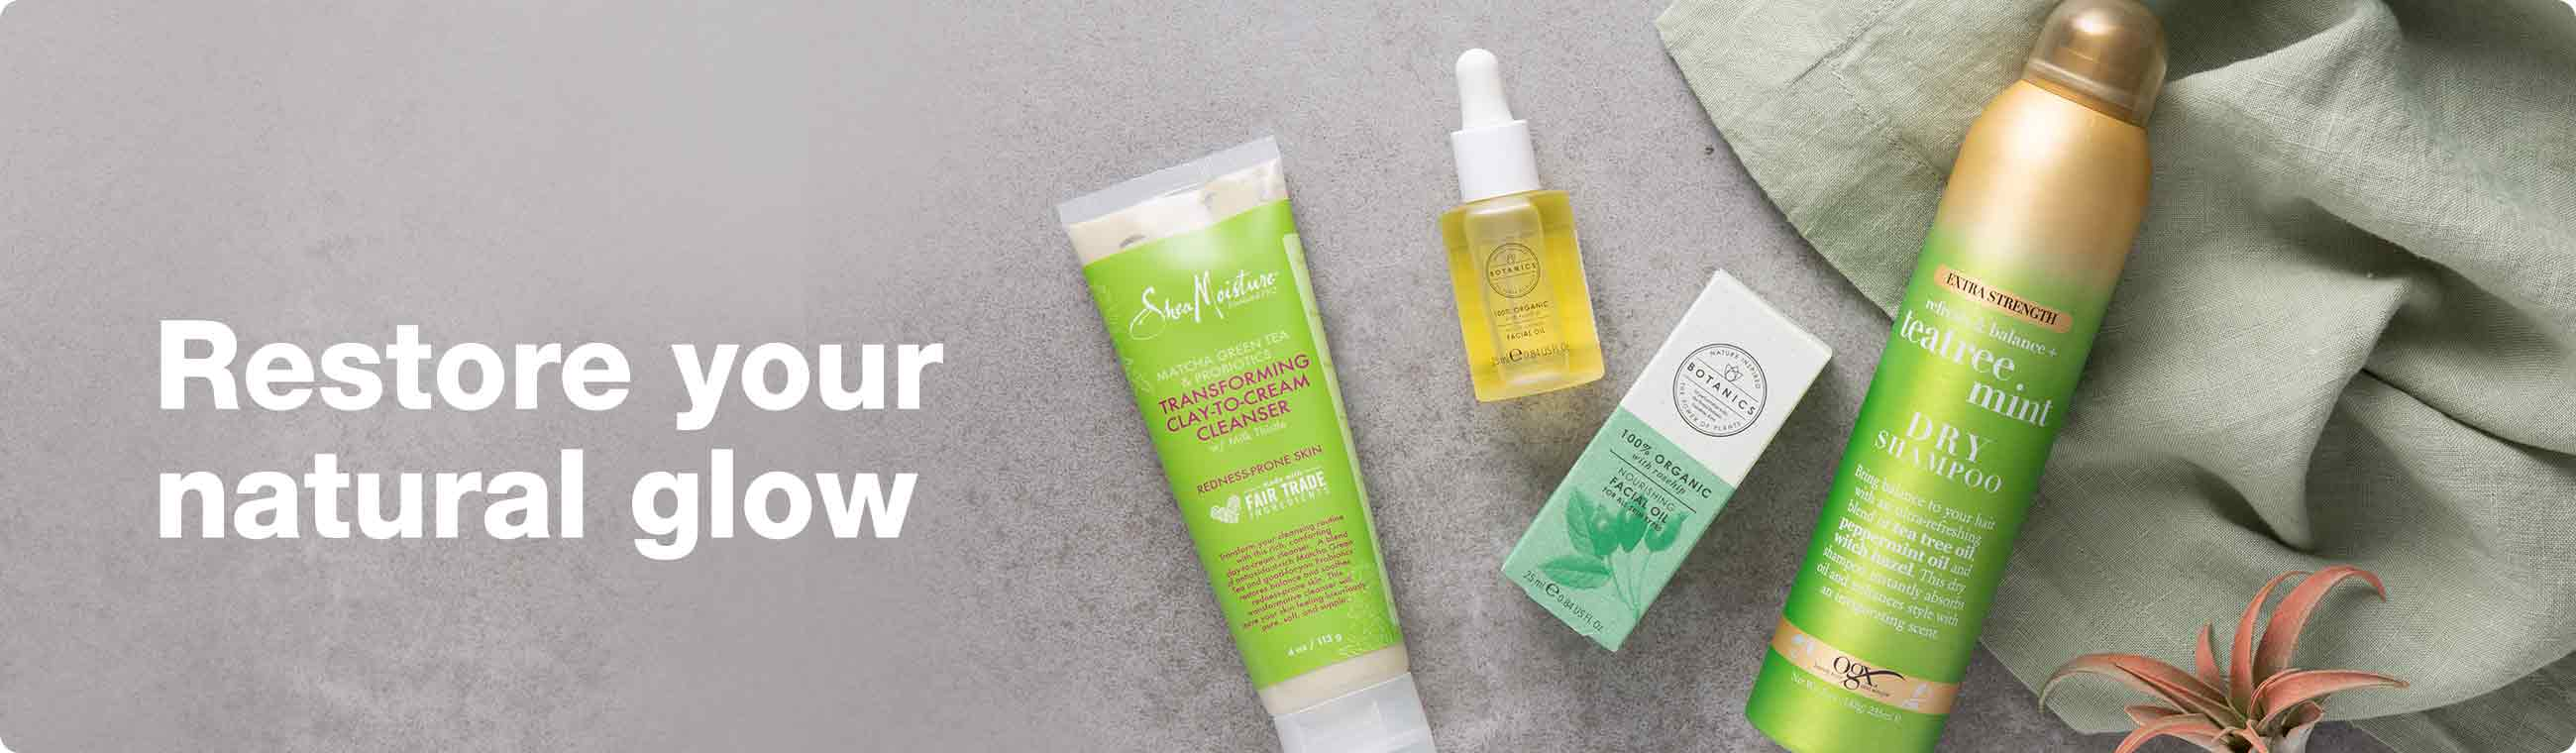 49a3600c6e83 Natural and Organic Beauty Products | Walgreens